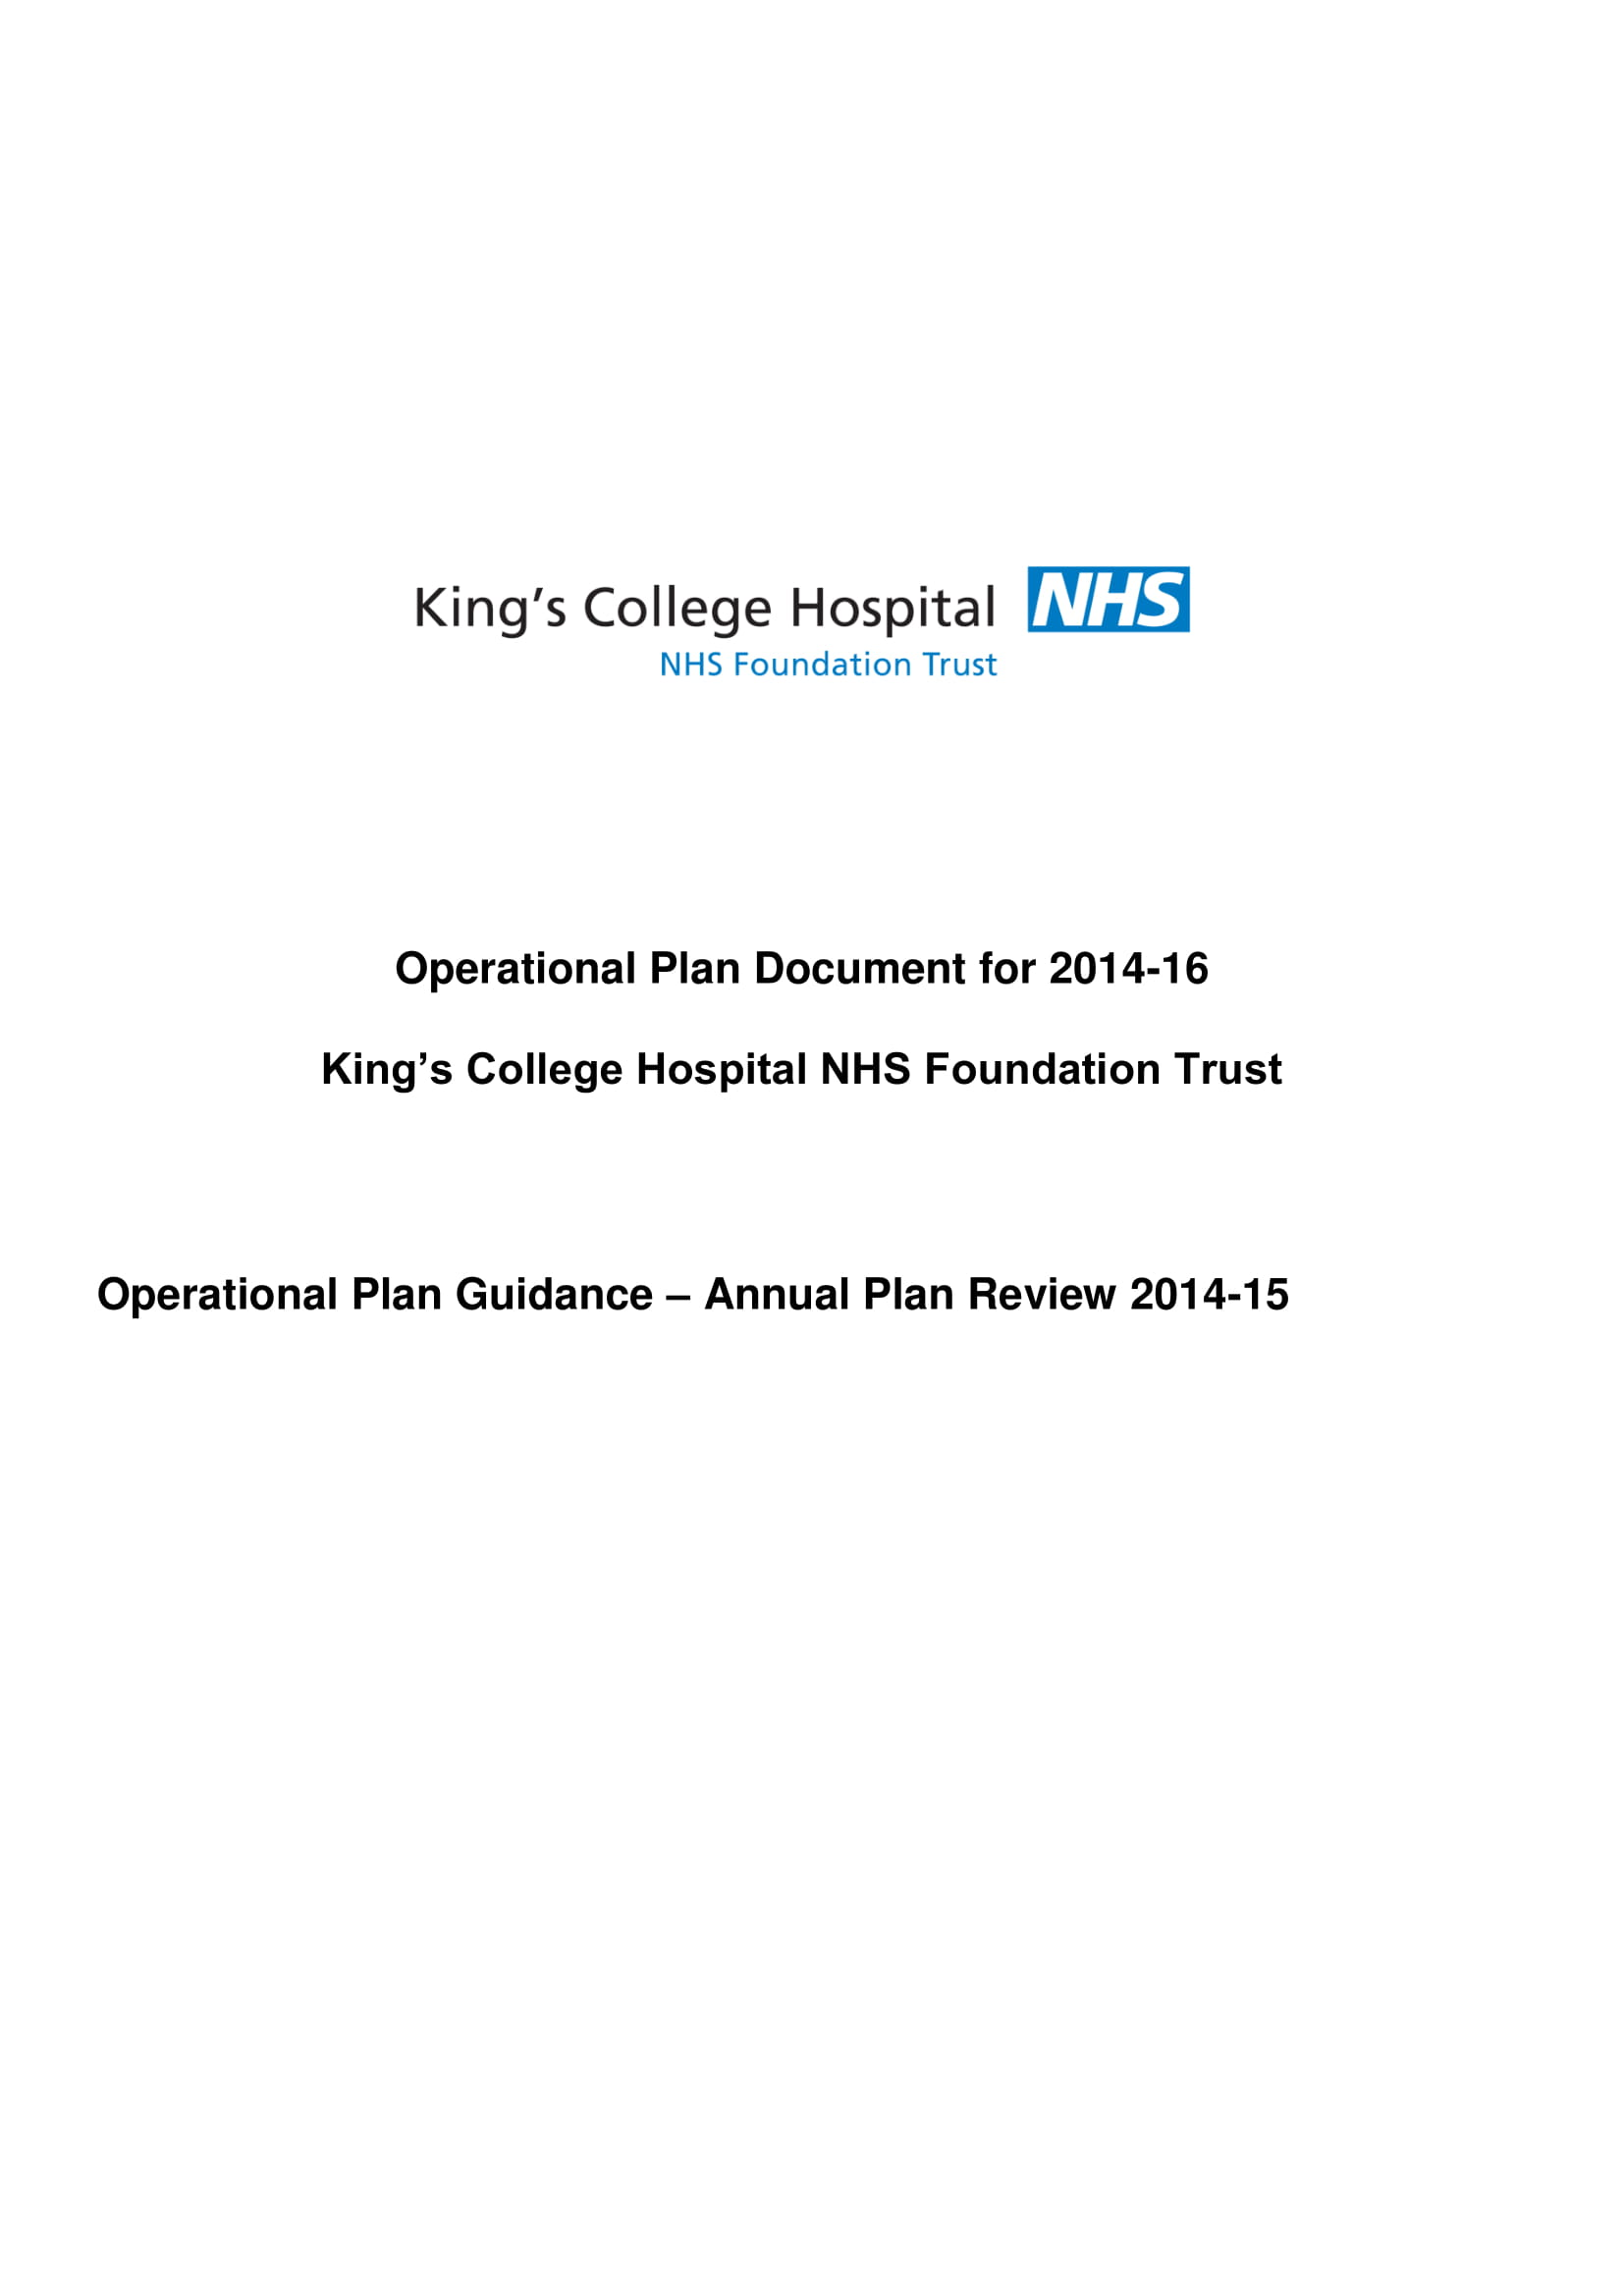 hospital operational plan guidance and annual plan review example 01